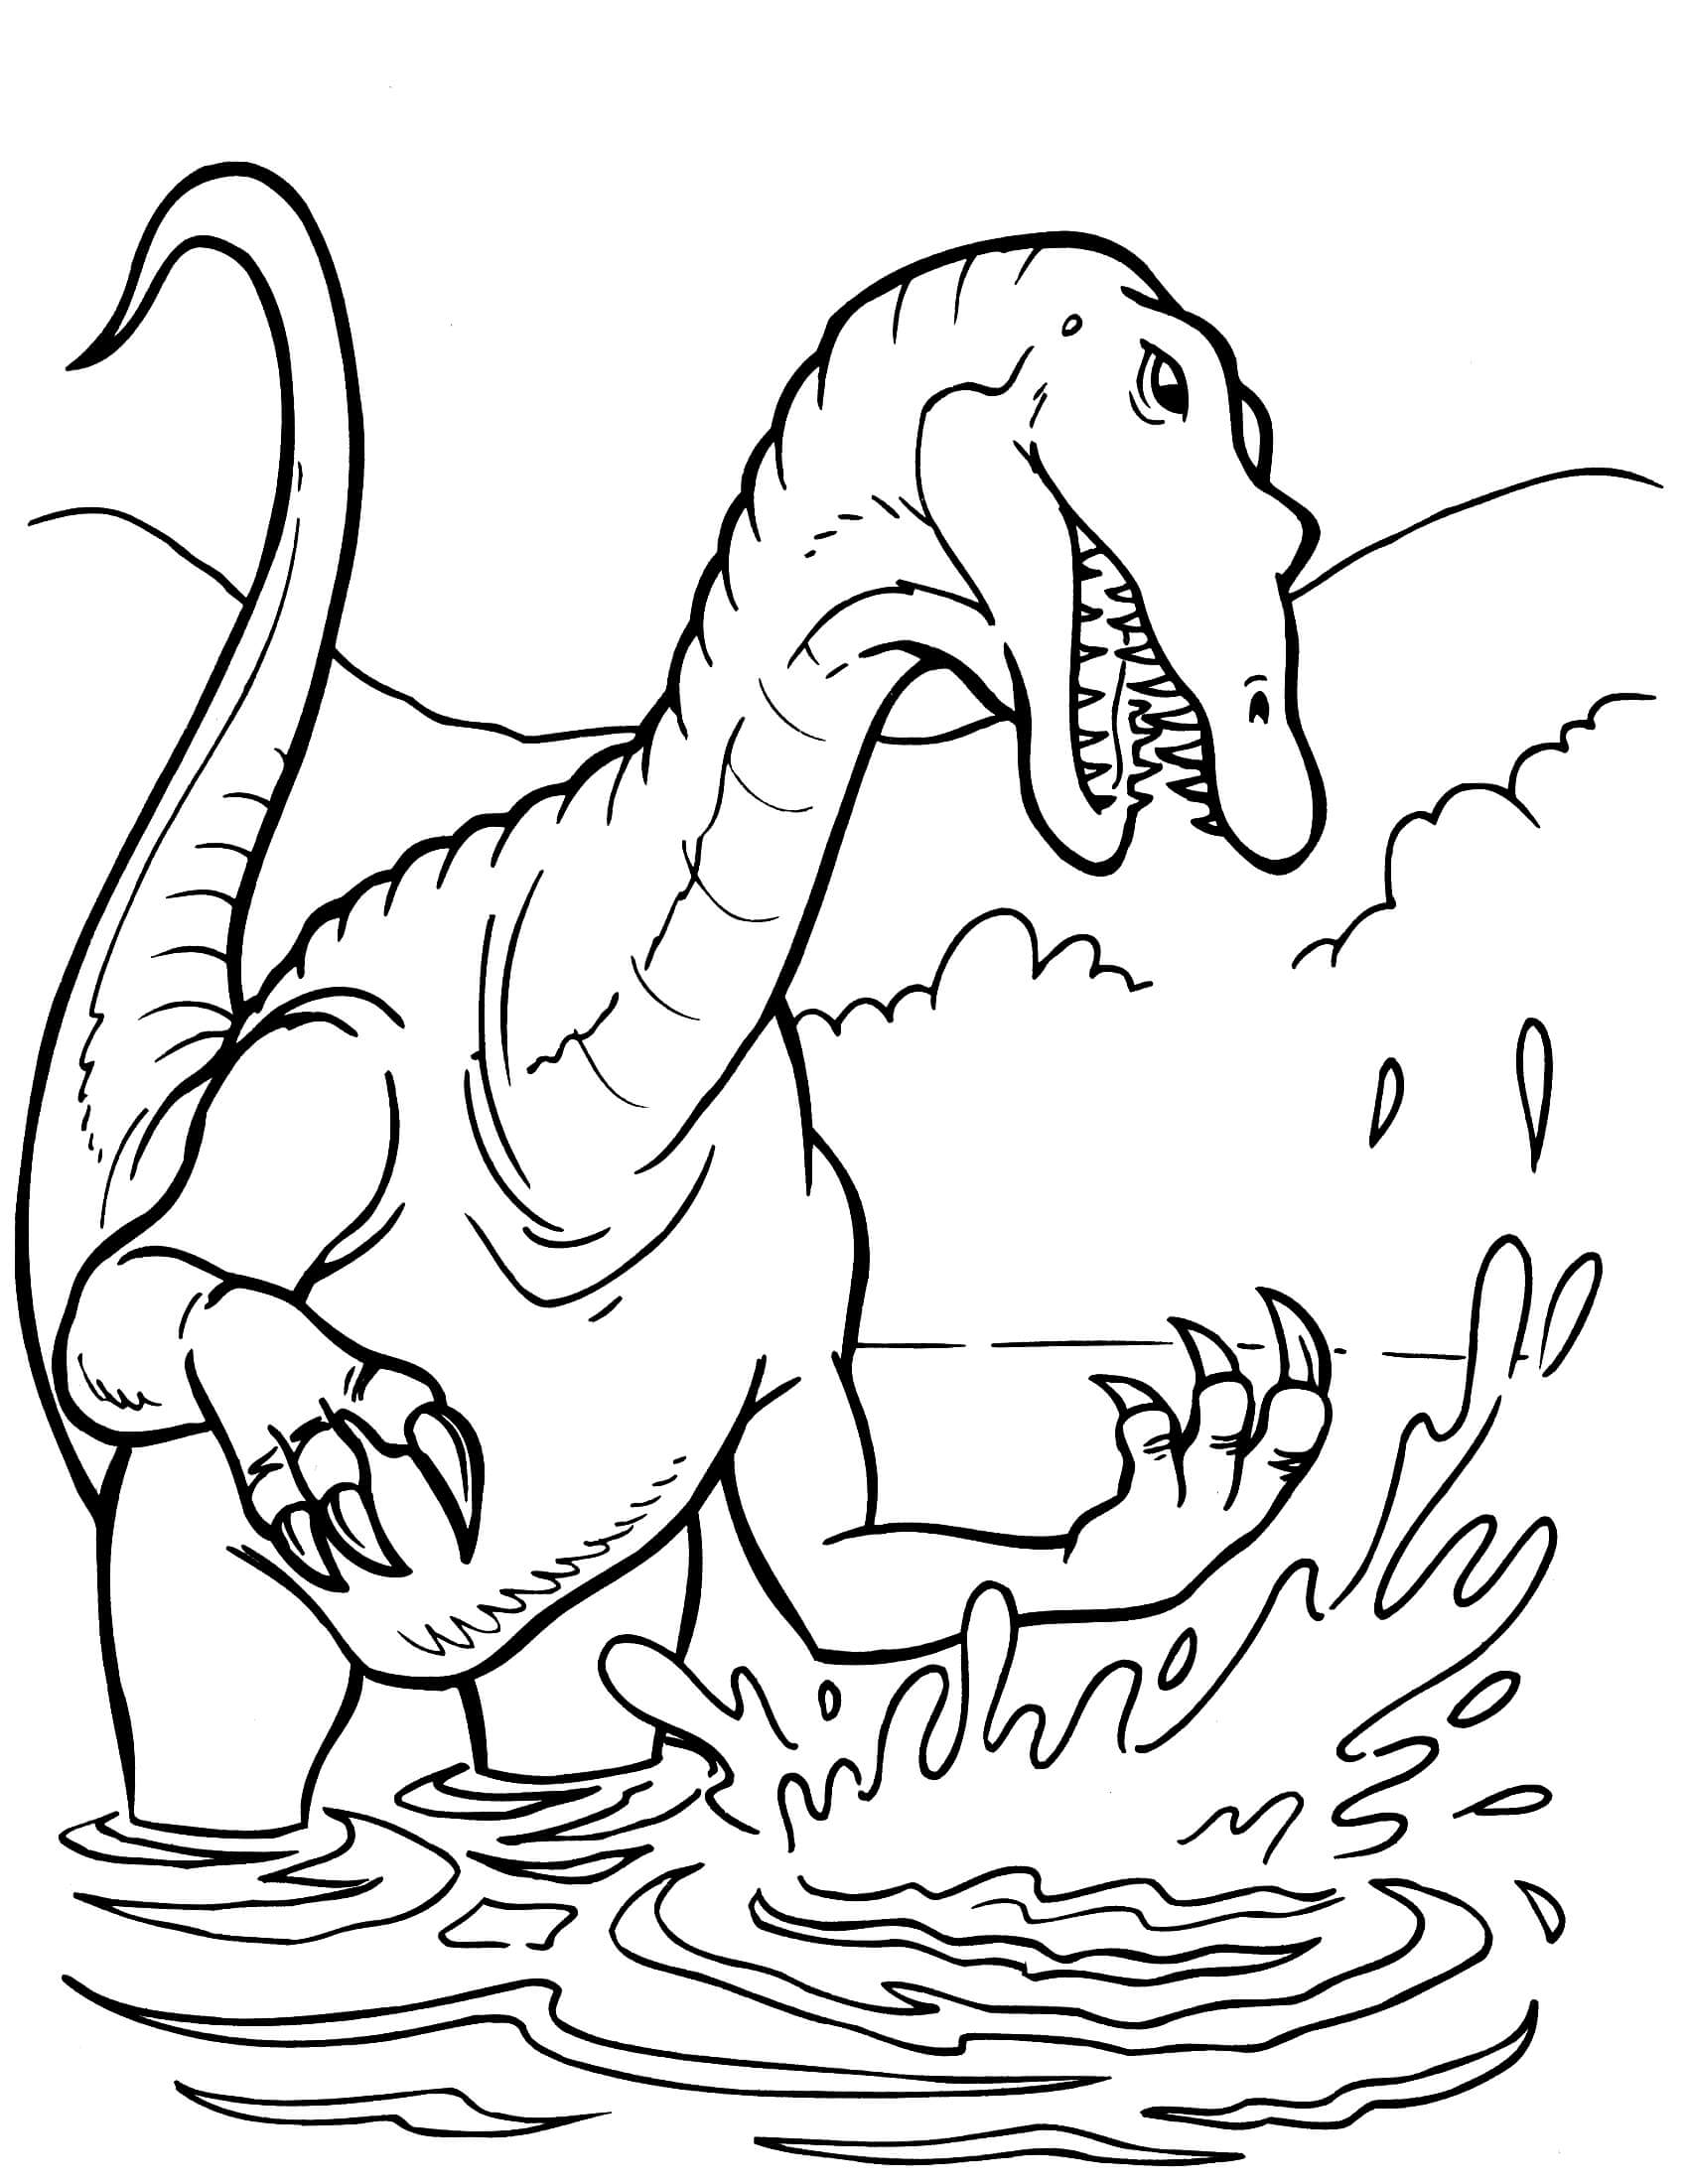 free printable coloring pages of dinosaurs dinosaurs coloring pages collection free coloring sheets coloring dinosaurs pages of printable free